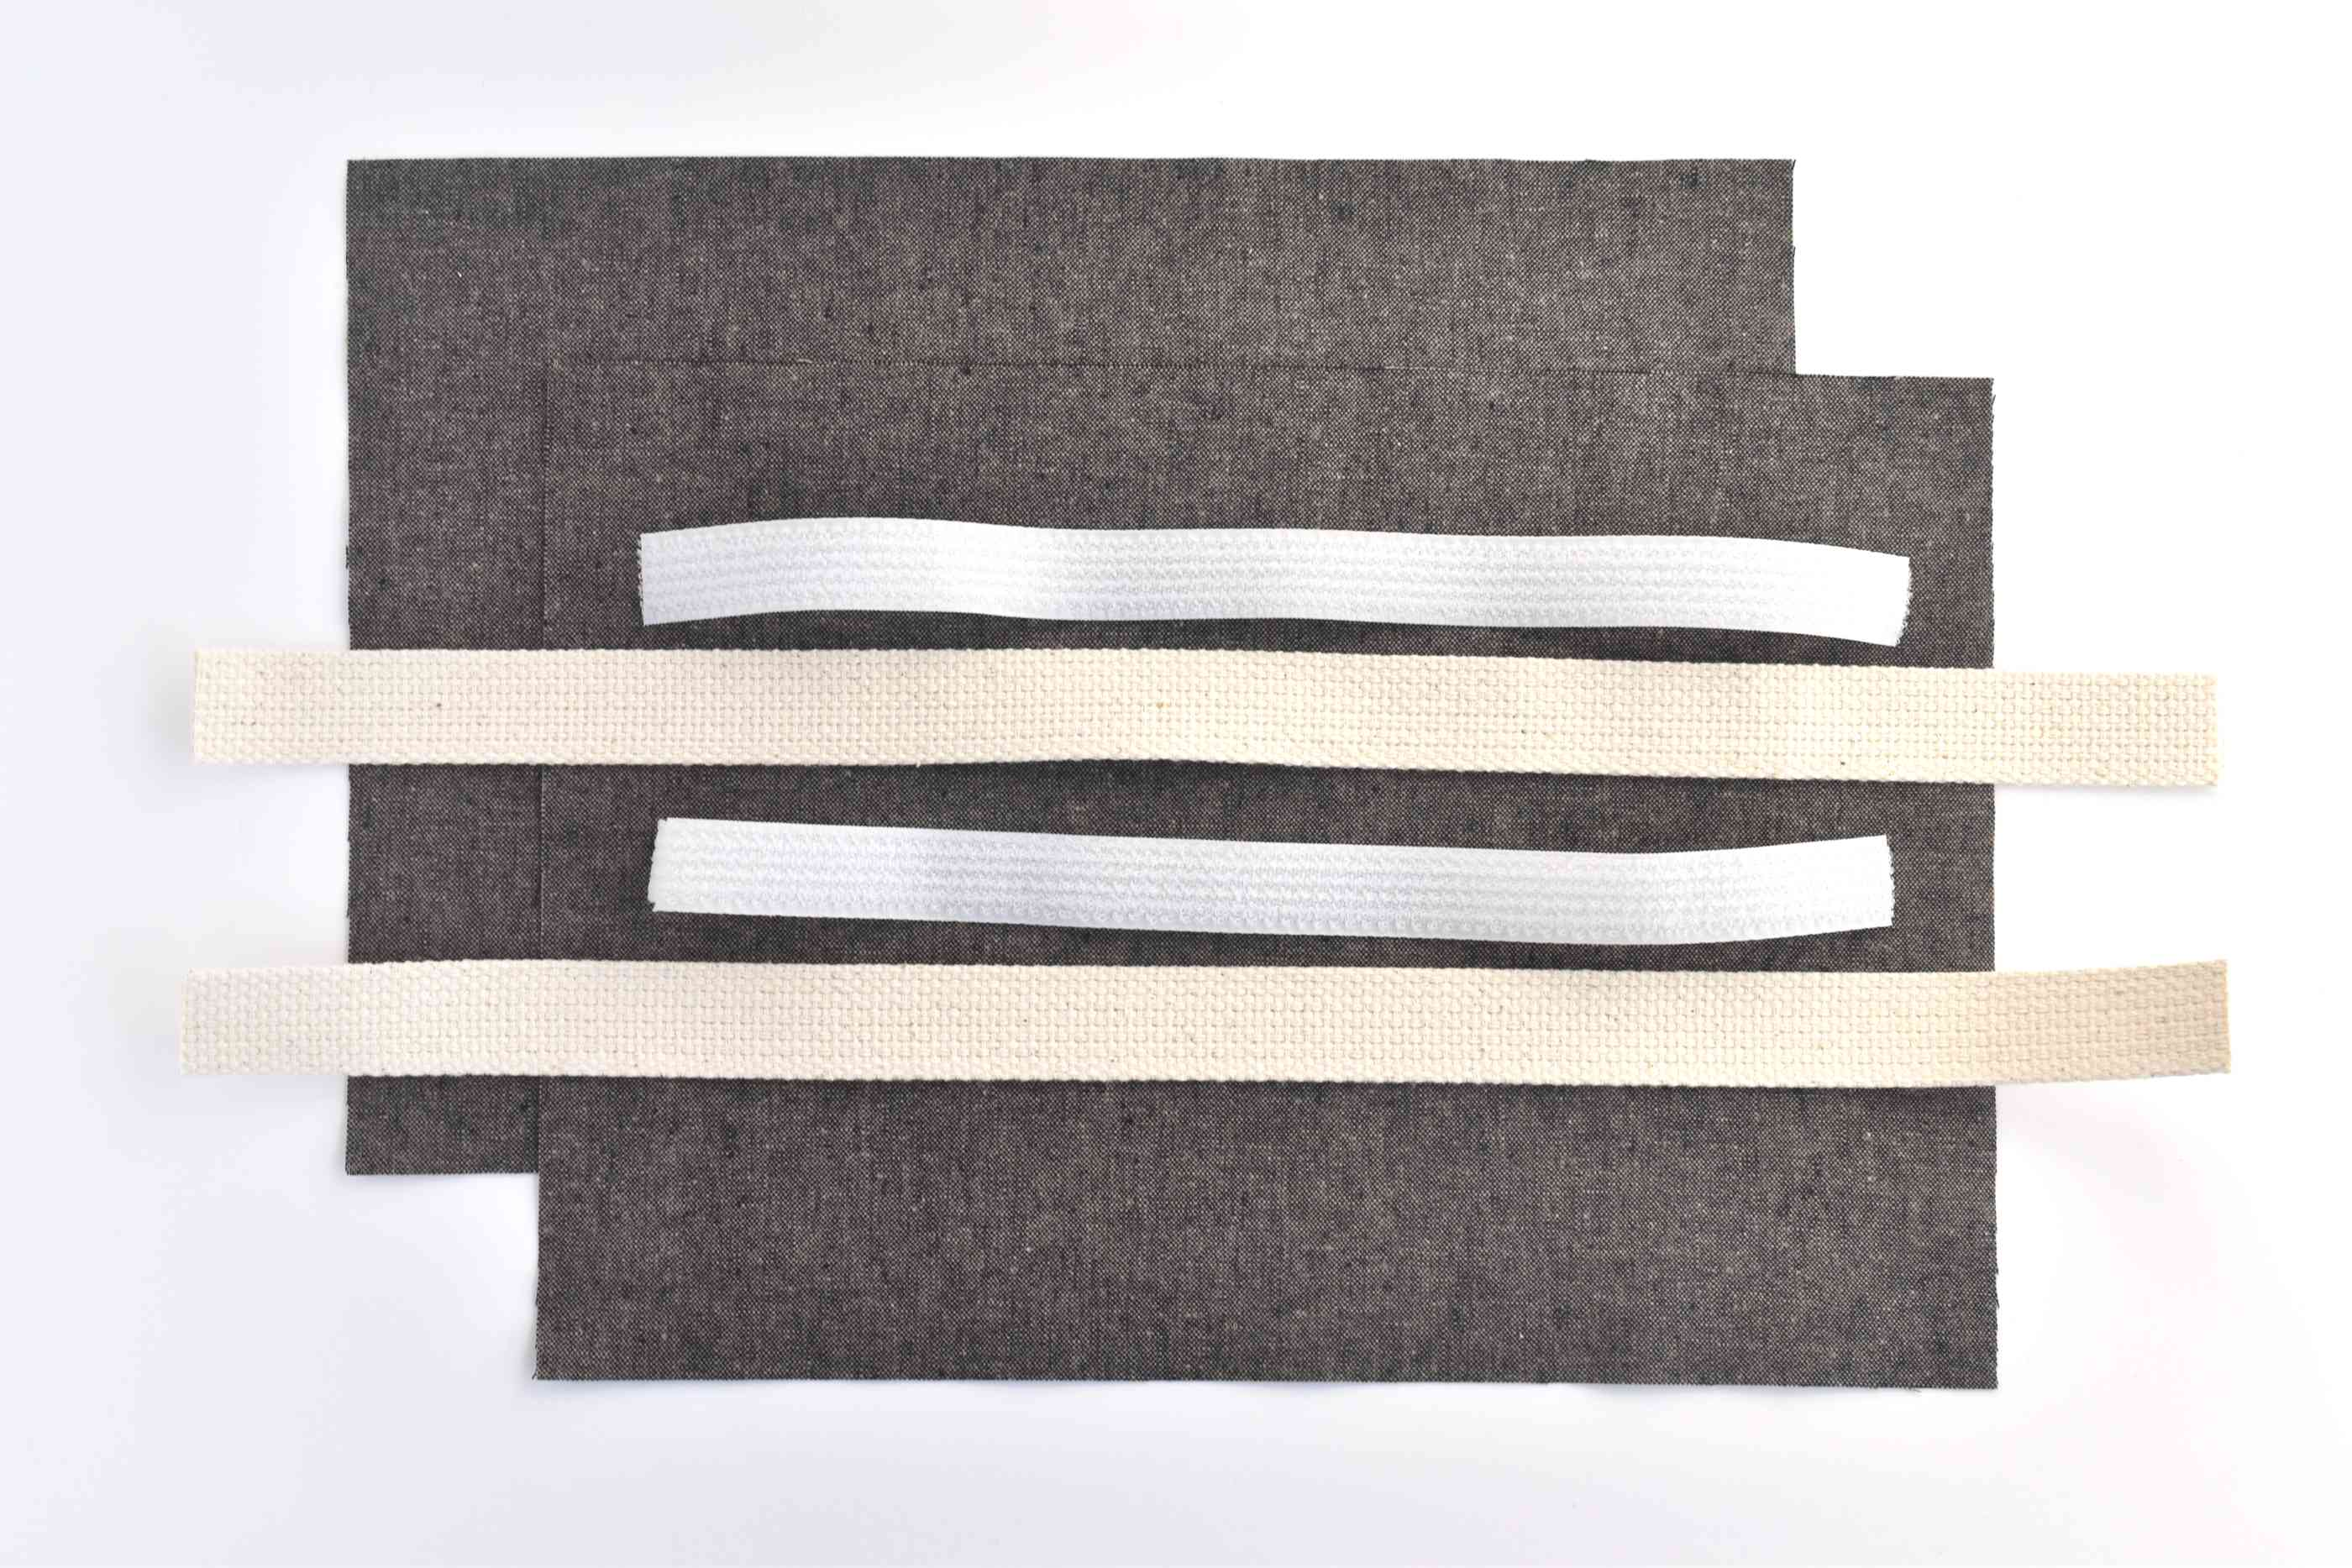 Measure and Cut the Fabric, Straps, and Velcro